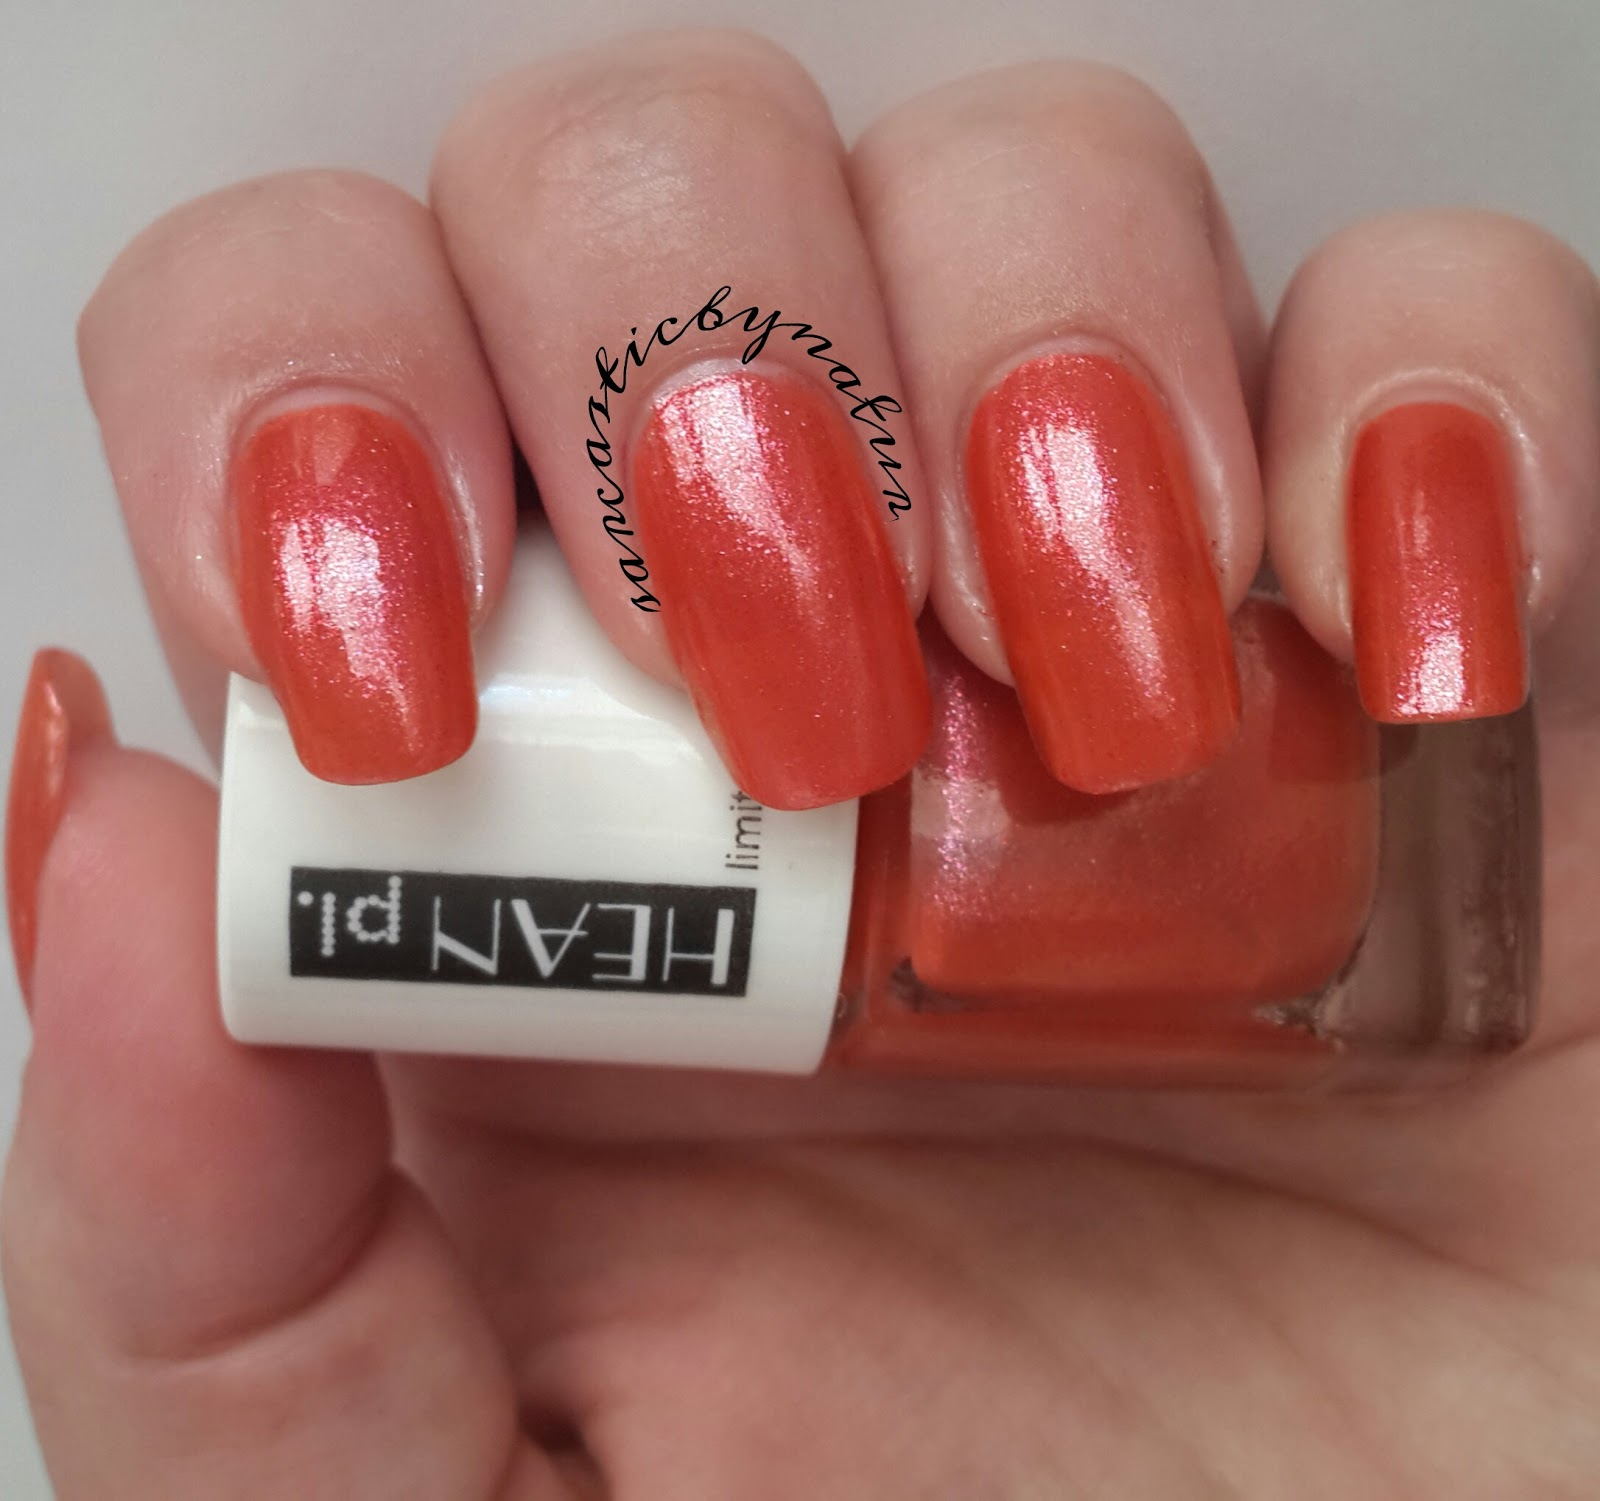 Sarcastic By Nature: Hean nail polish #275 - Jungle Pop collection